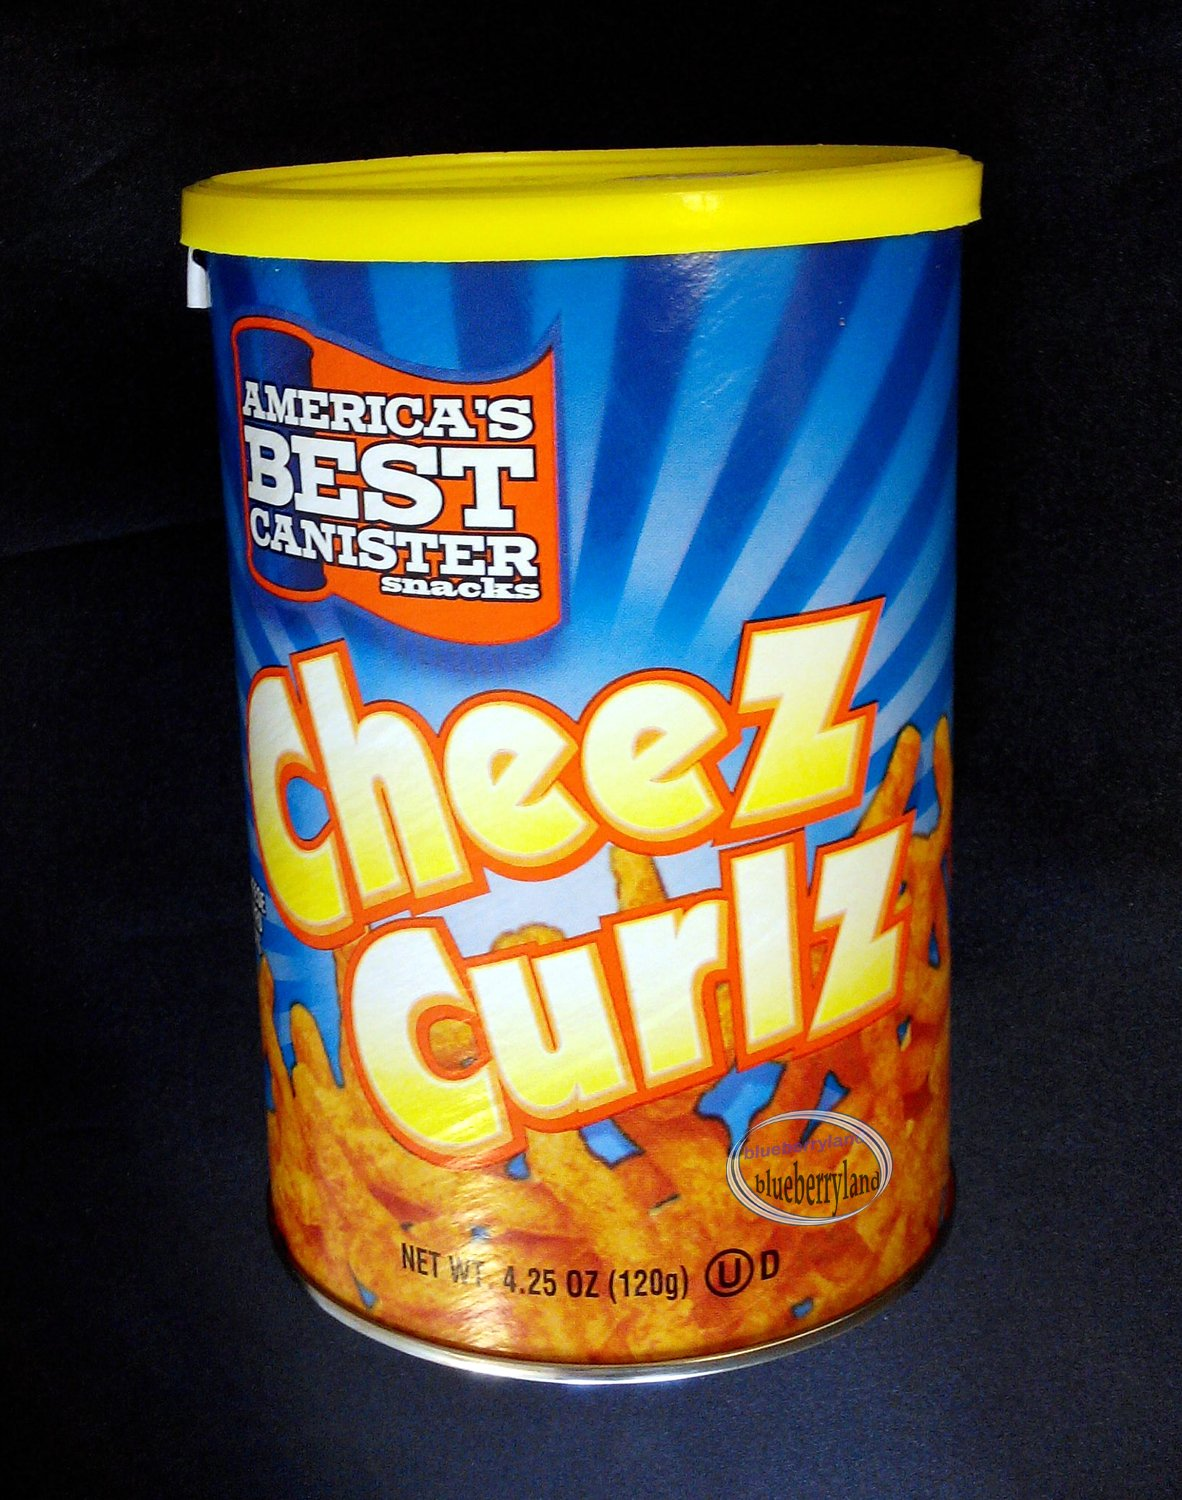 America's Best Canister Cheez Curlz crunchy cheese flavored curl stick Snack 4.25 oz. (120.5 g)